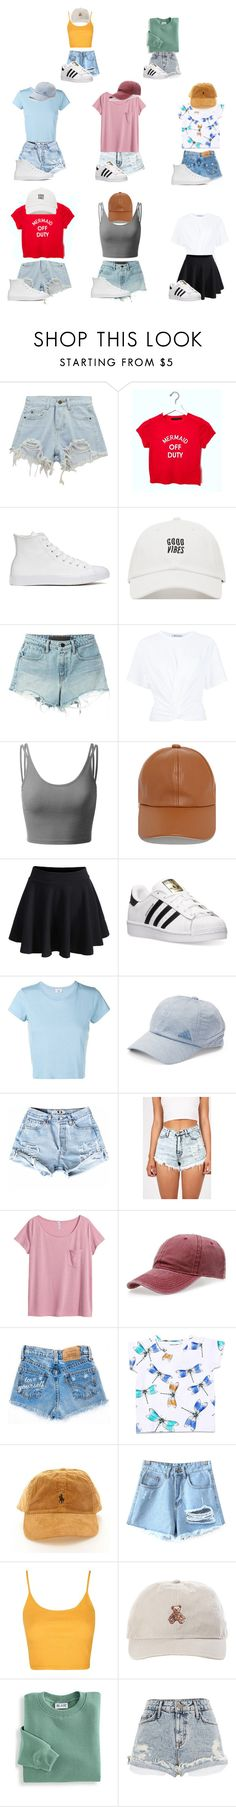 """My summer week (but 8 instead)"" by garaff ❤ liked on Polyvore featuring Chicnova Fashion, Converse, T By Alexander Wang, Doublju, LULUS, WithChic, adidas, RE/DONE, H&M and Mini Rodini"